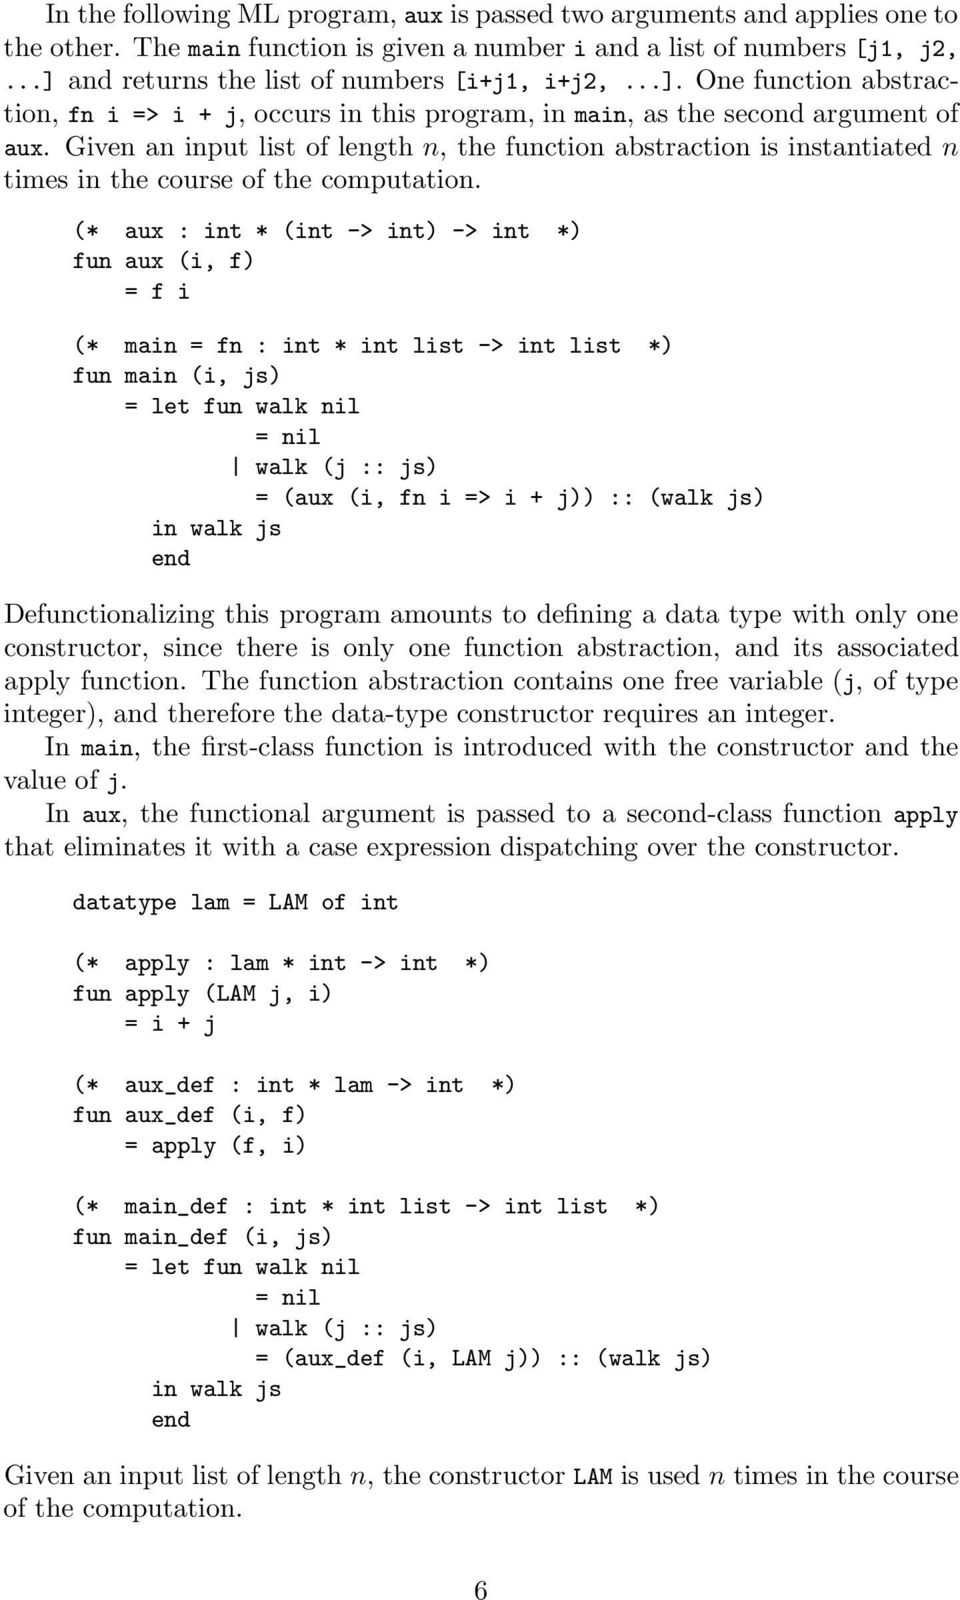 Given an input list of length n, the function abstraction is instantiated n times in the course of the computation.